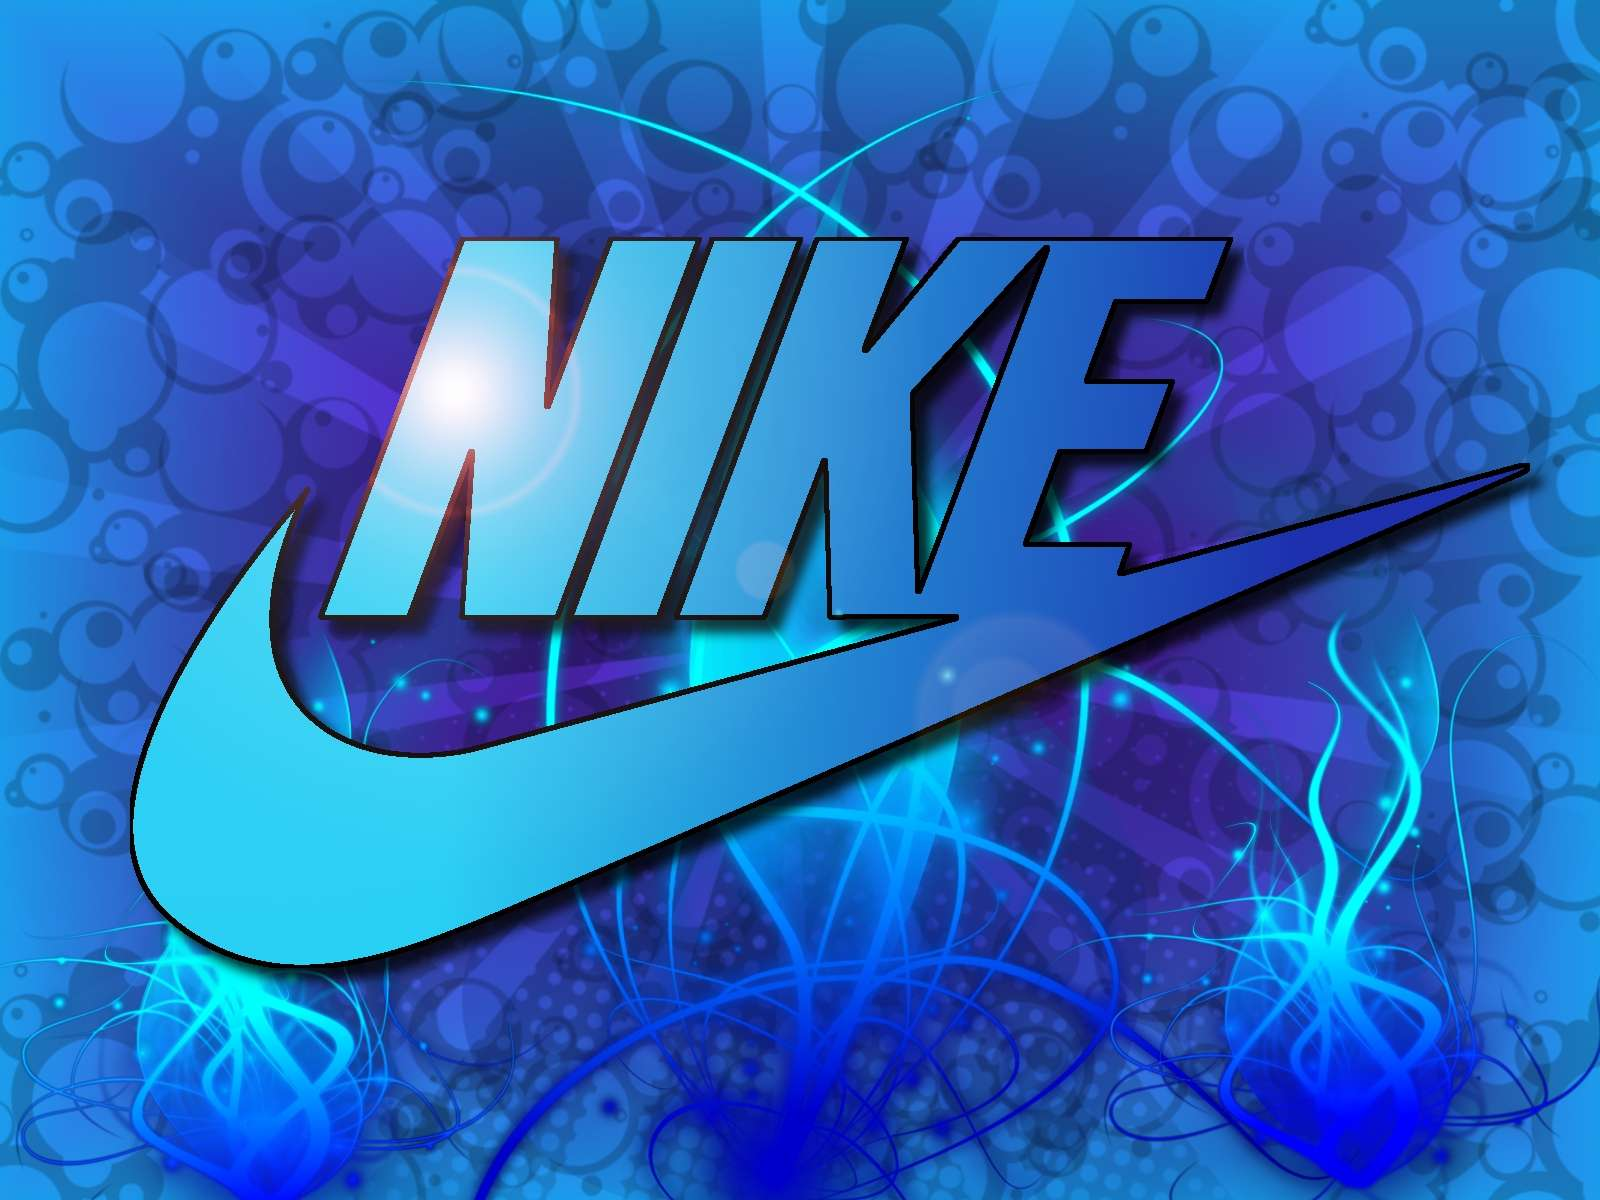 Nike Phone Wallpaper 9248 Wallpapers Coolz HD Wallpaper 1600x1200